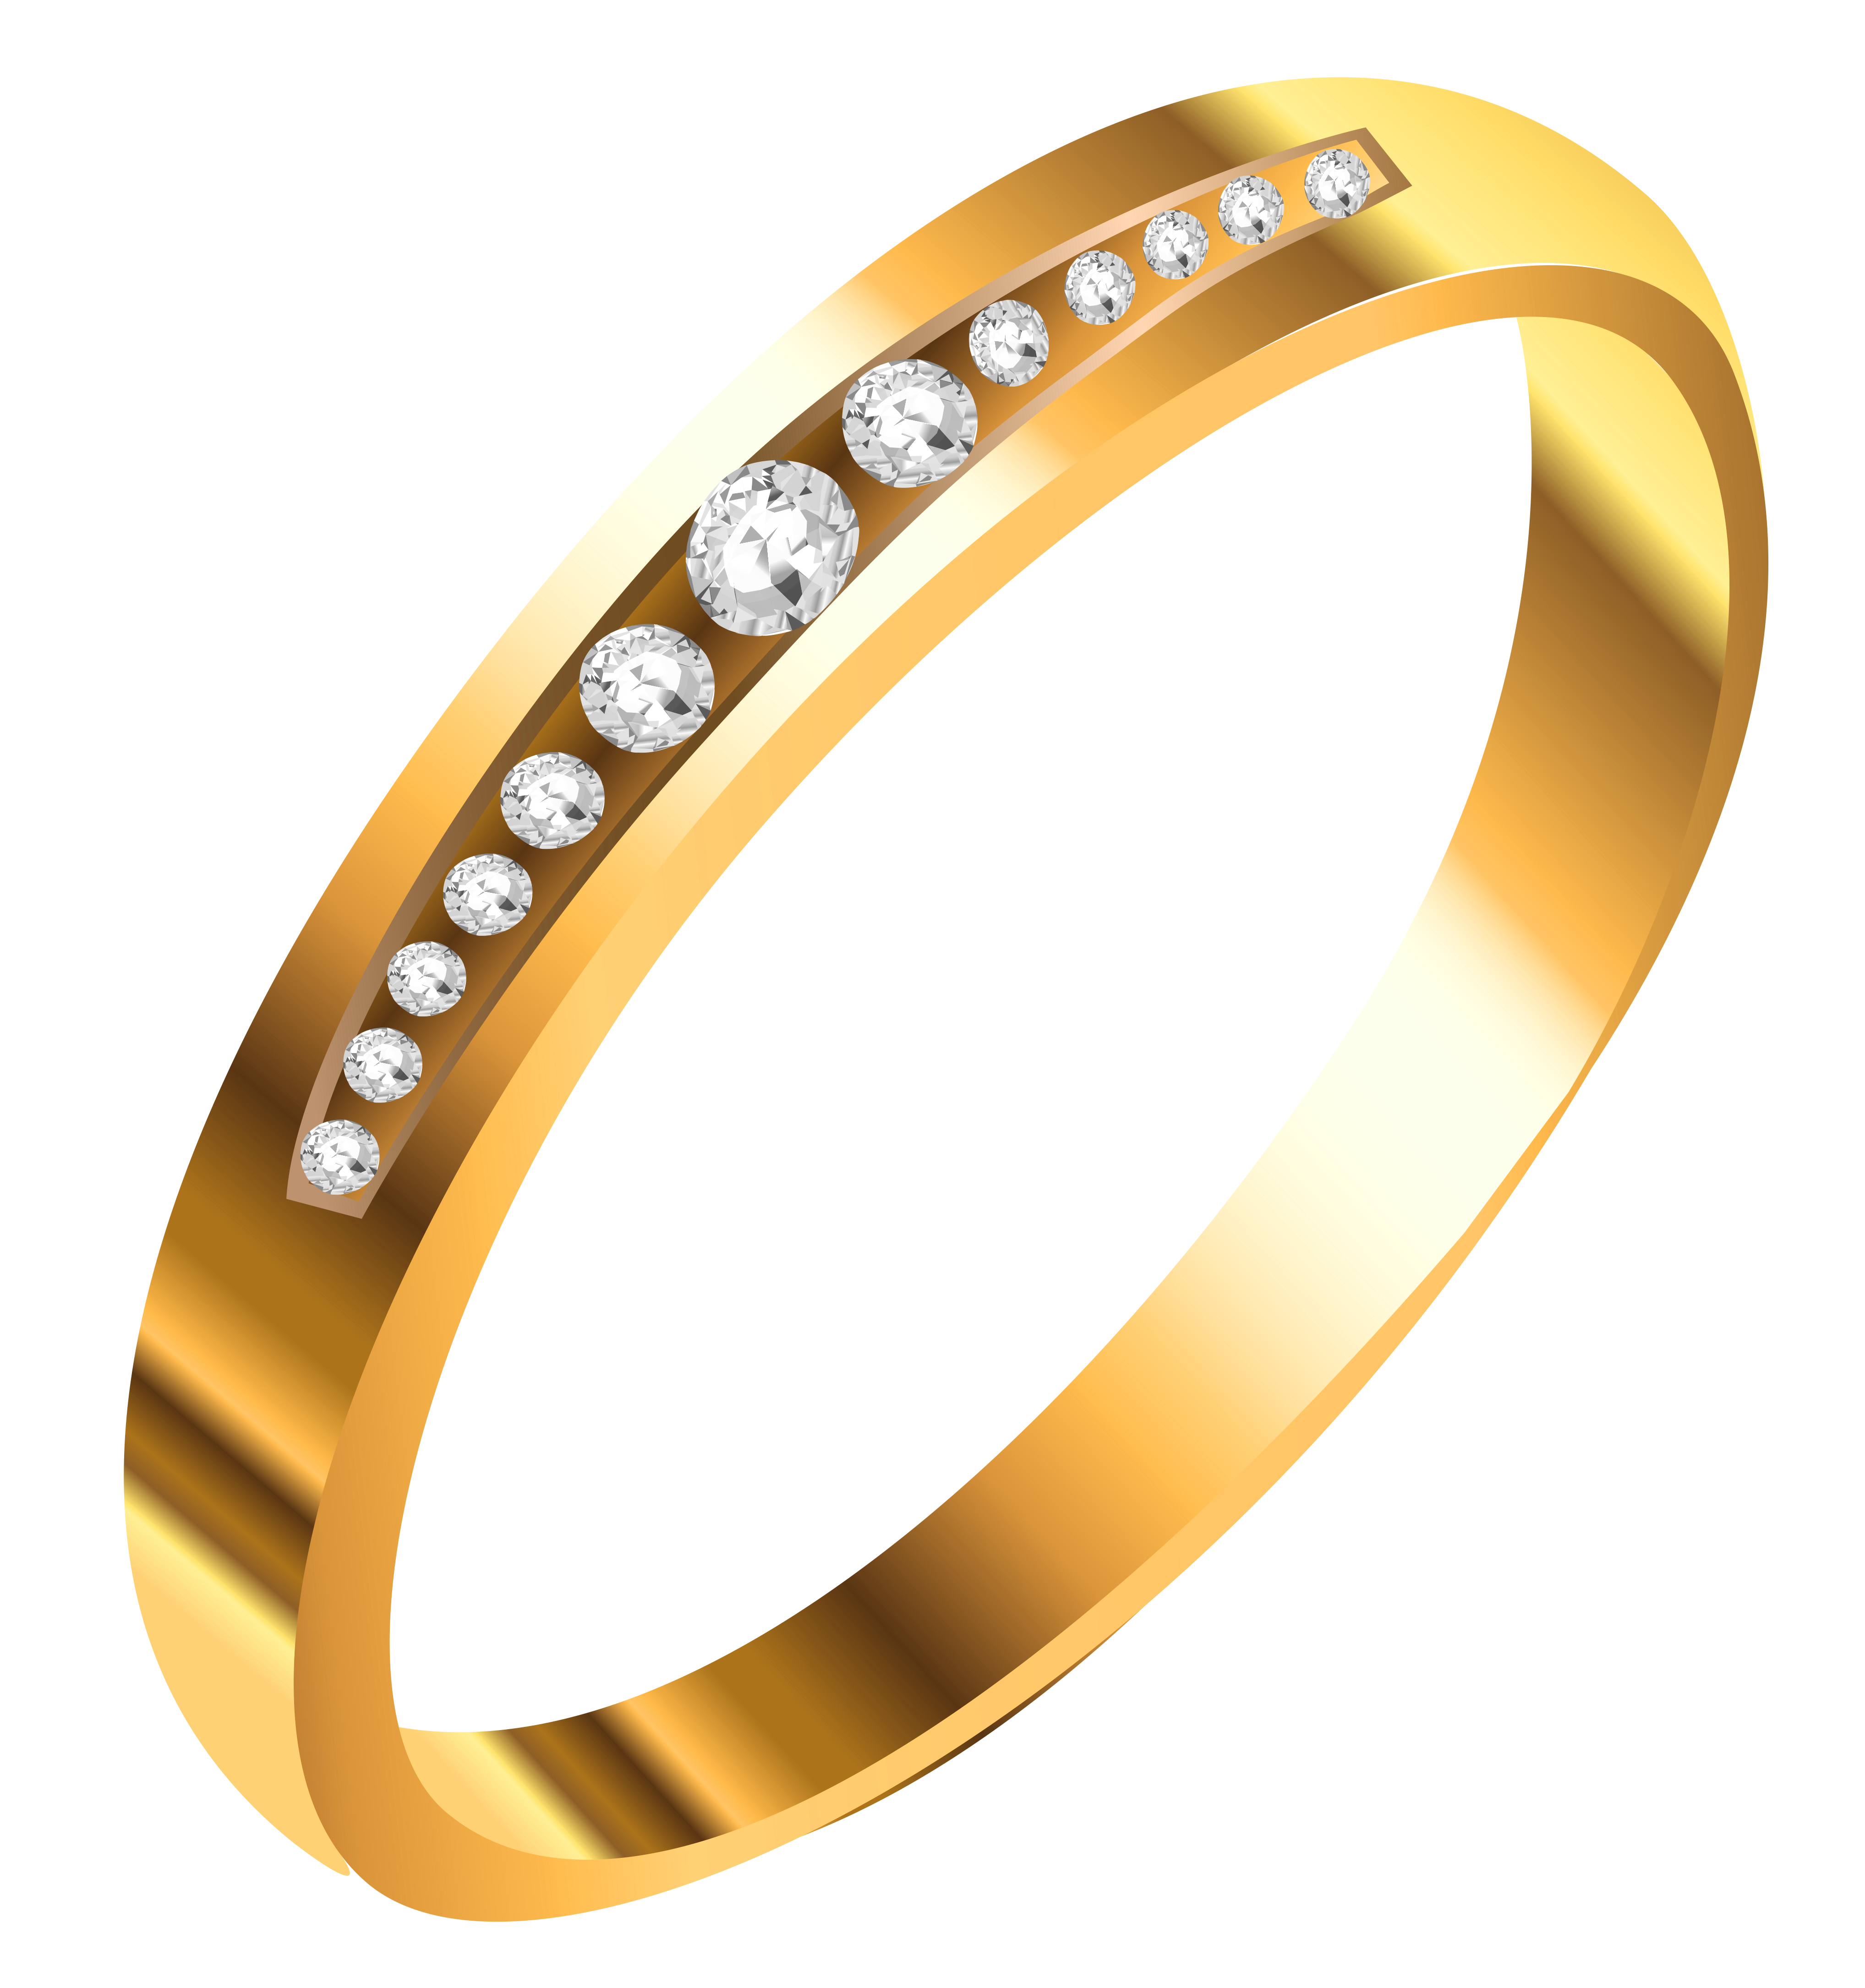 Ring clipart gold necklace #7